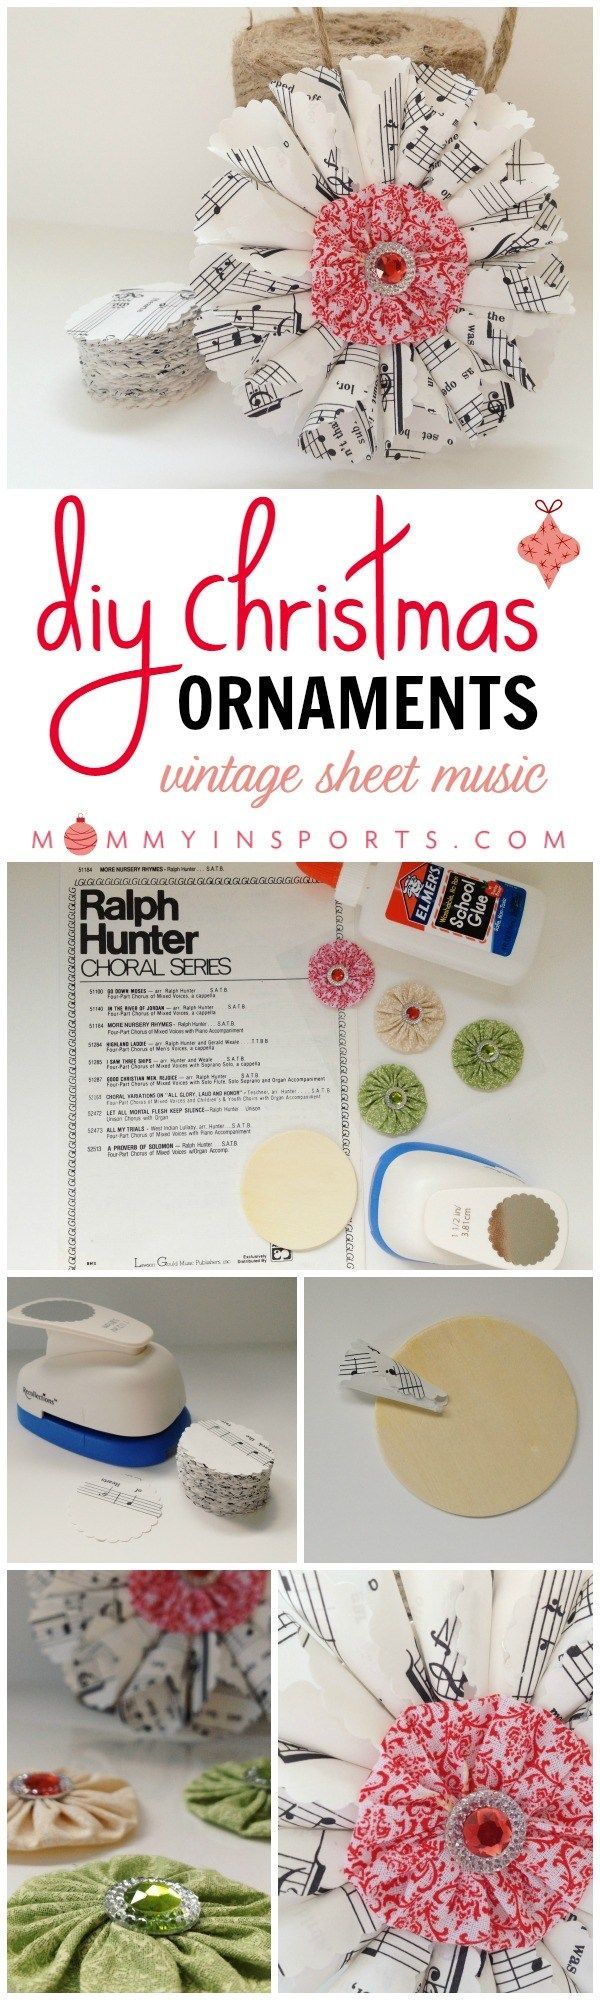 Christmas music ornaments - 25 Best Ideas About Sheet Music Ornaments On Pinterest Sheet Music Ornaments Diy Music And Arts Hours And Diy Xmas Decorations